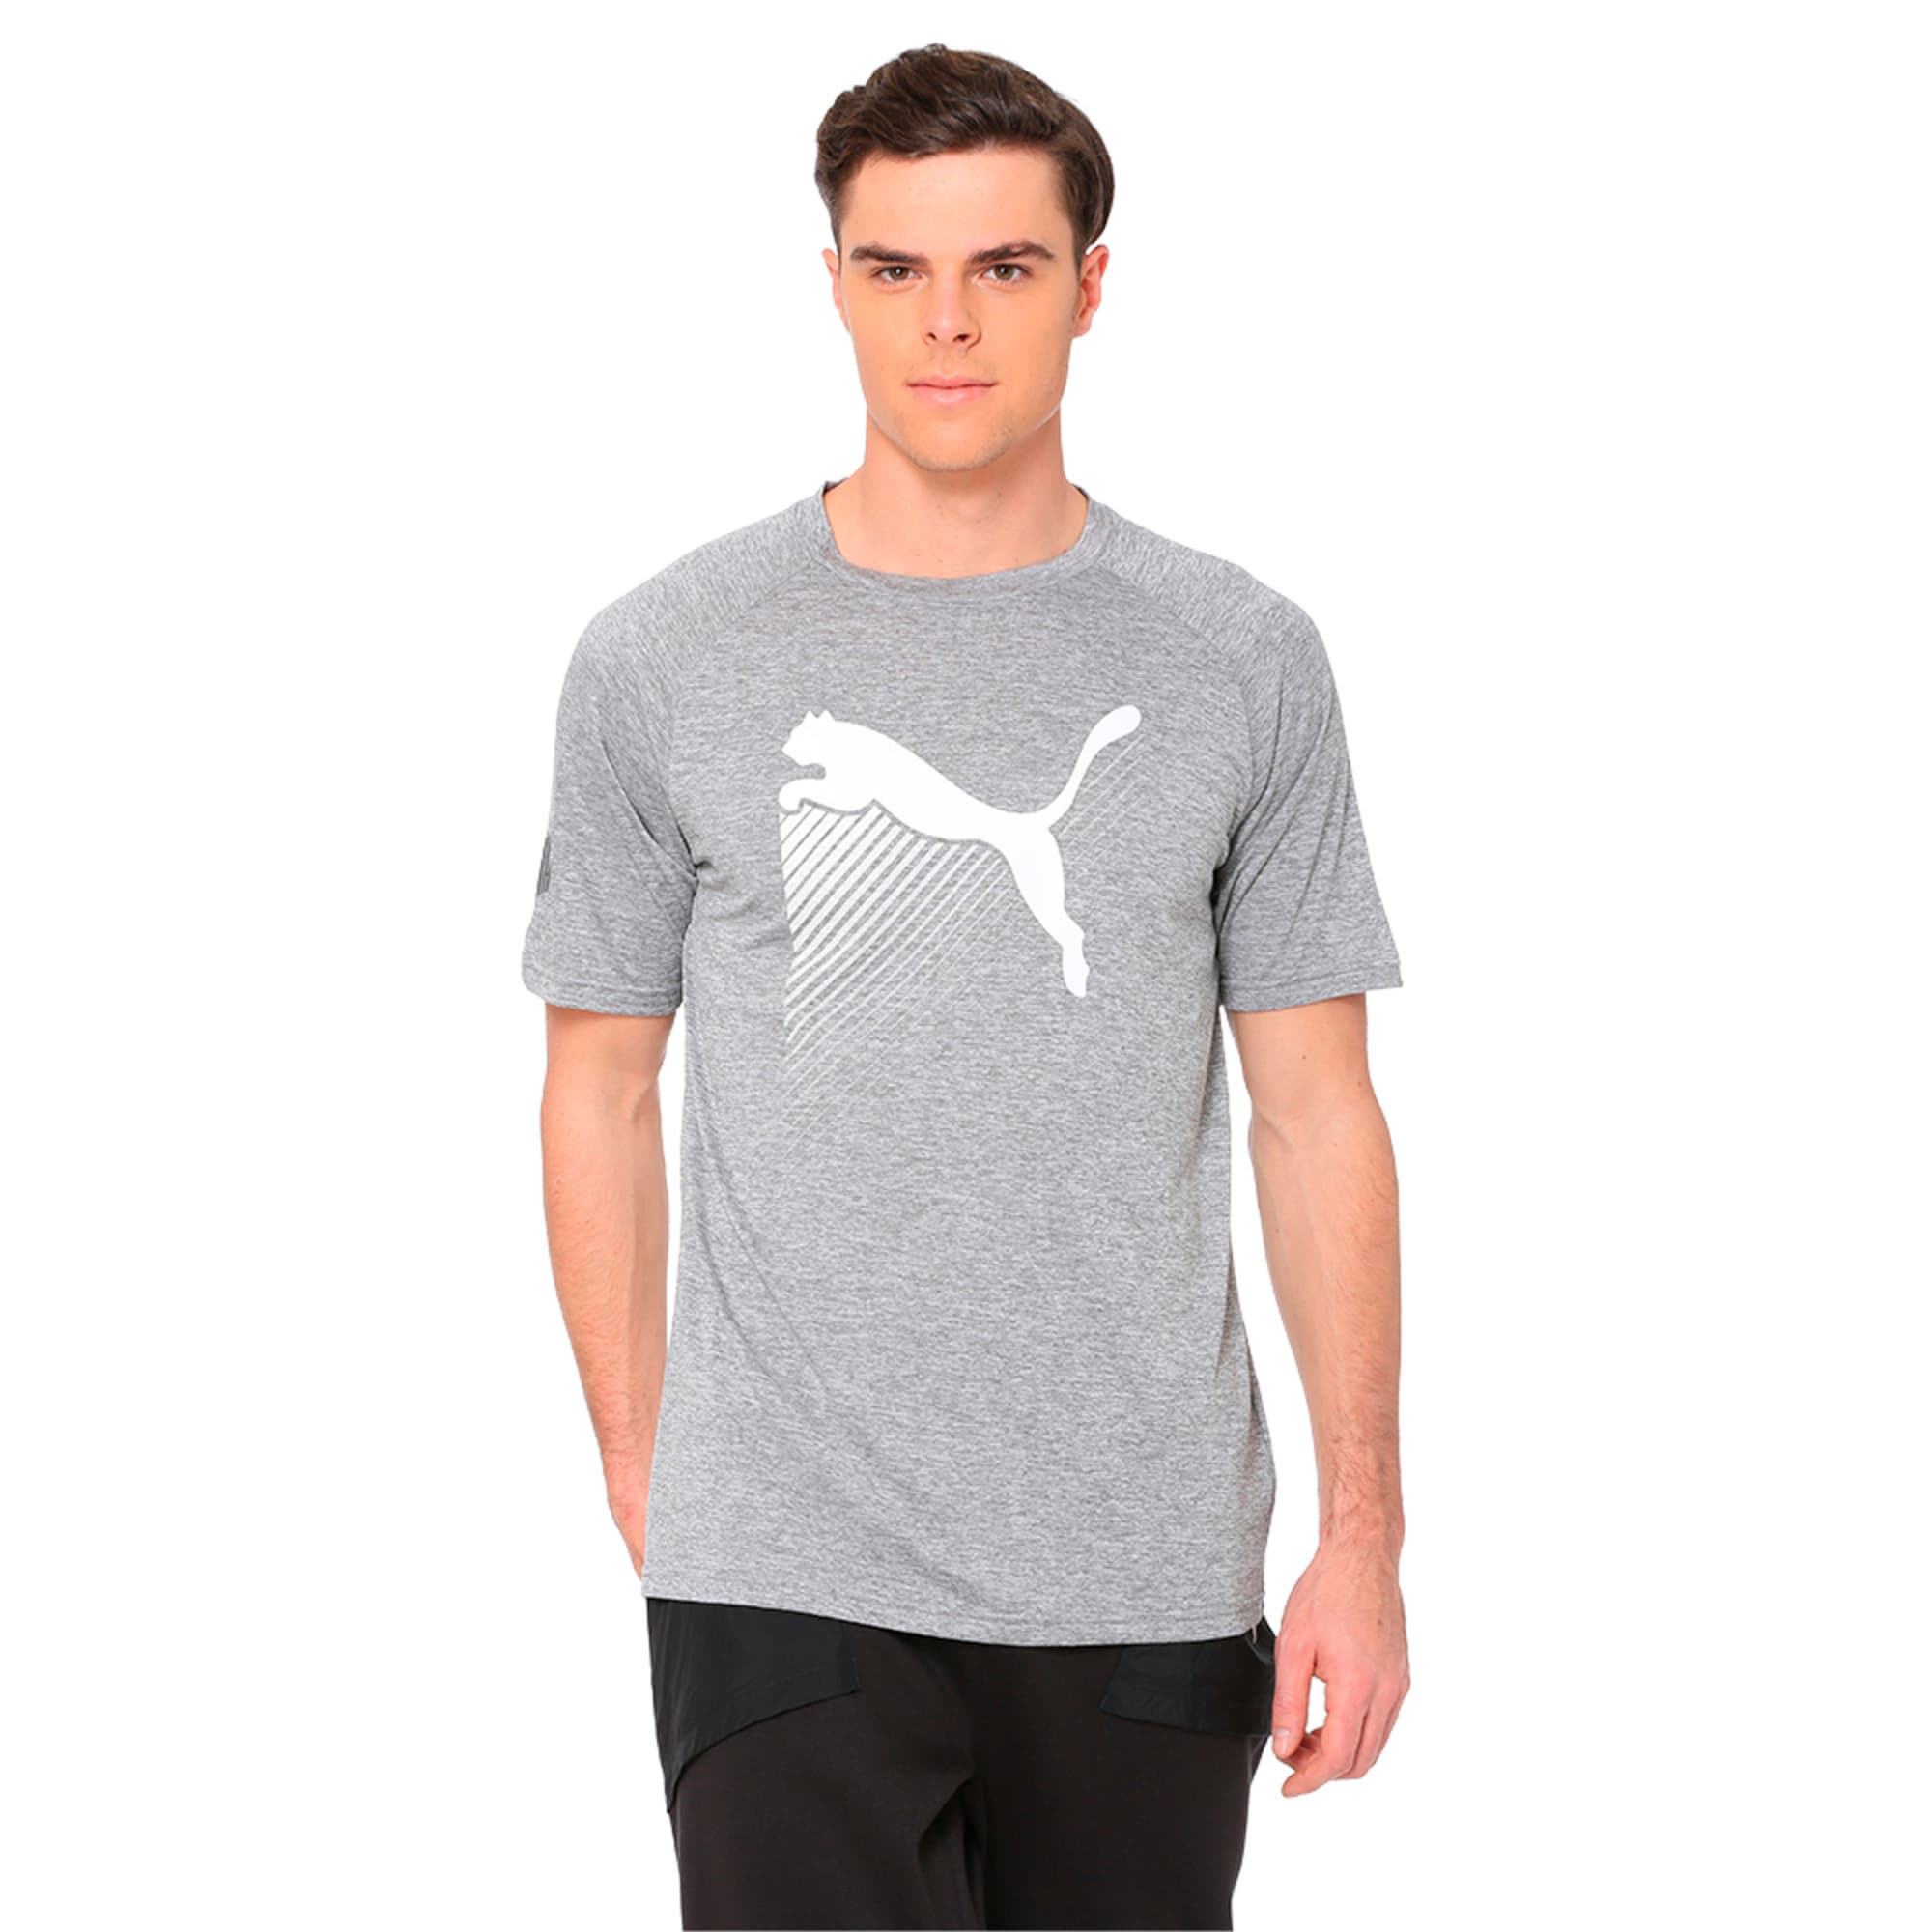 Thumbnail 1 of The CAT Heather Men's Training Tee, Charcoal Gray Heather, medium-IND